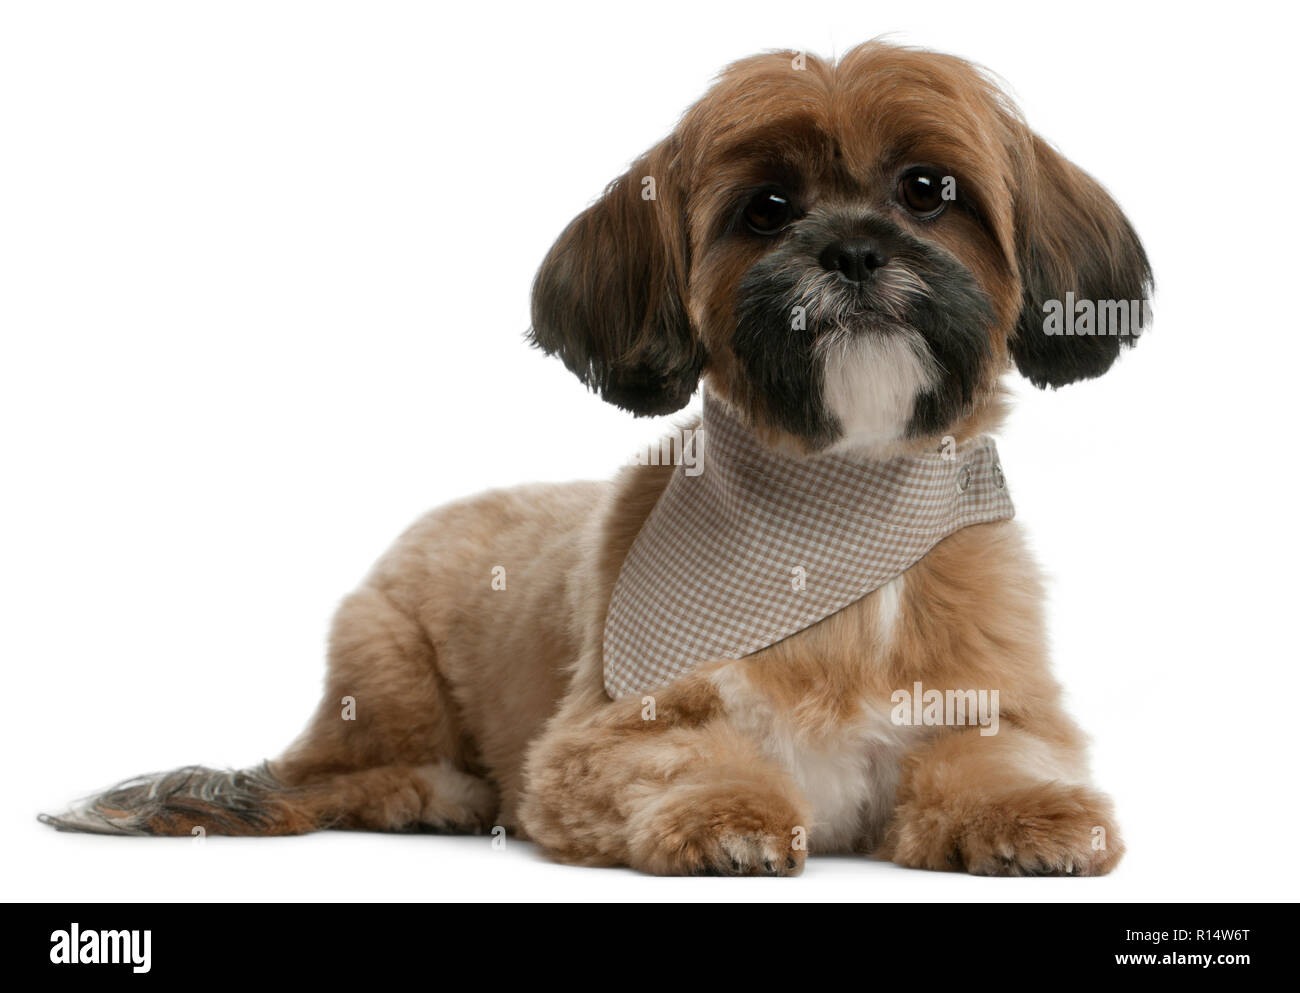 Lhassa Apso, 1 year old, lying in front of white background - Stock Image